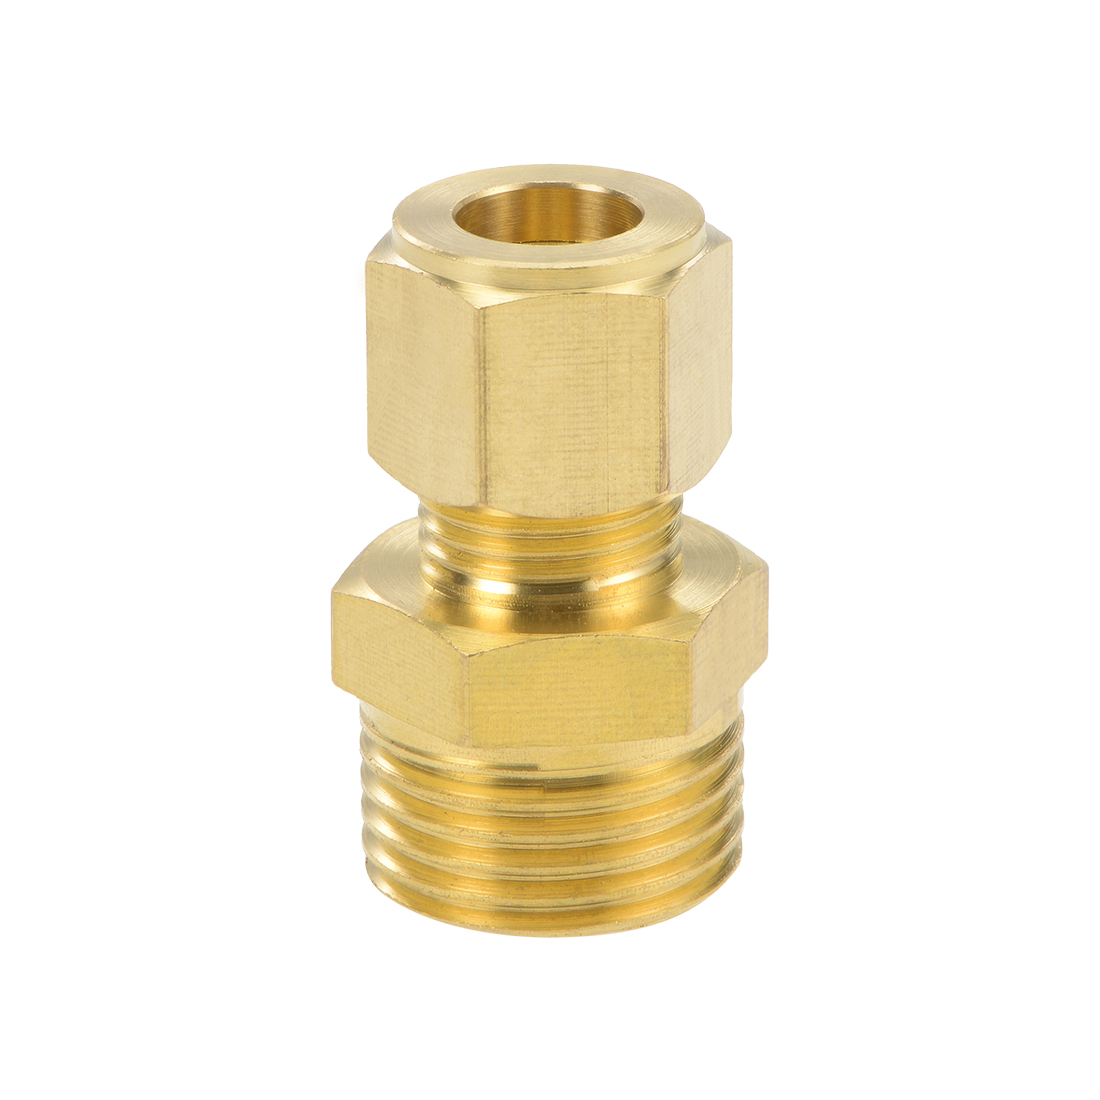 Brass Compression Tube Fitting 9.6mm OD 1/2 NPT Male Thread Pipe Adapter